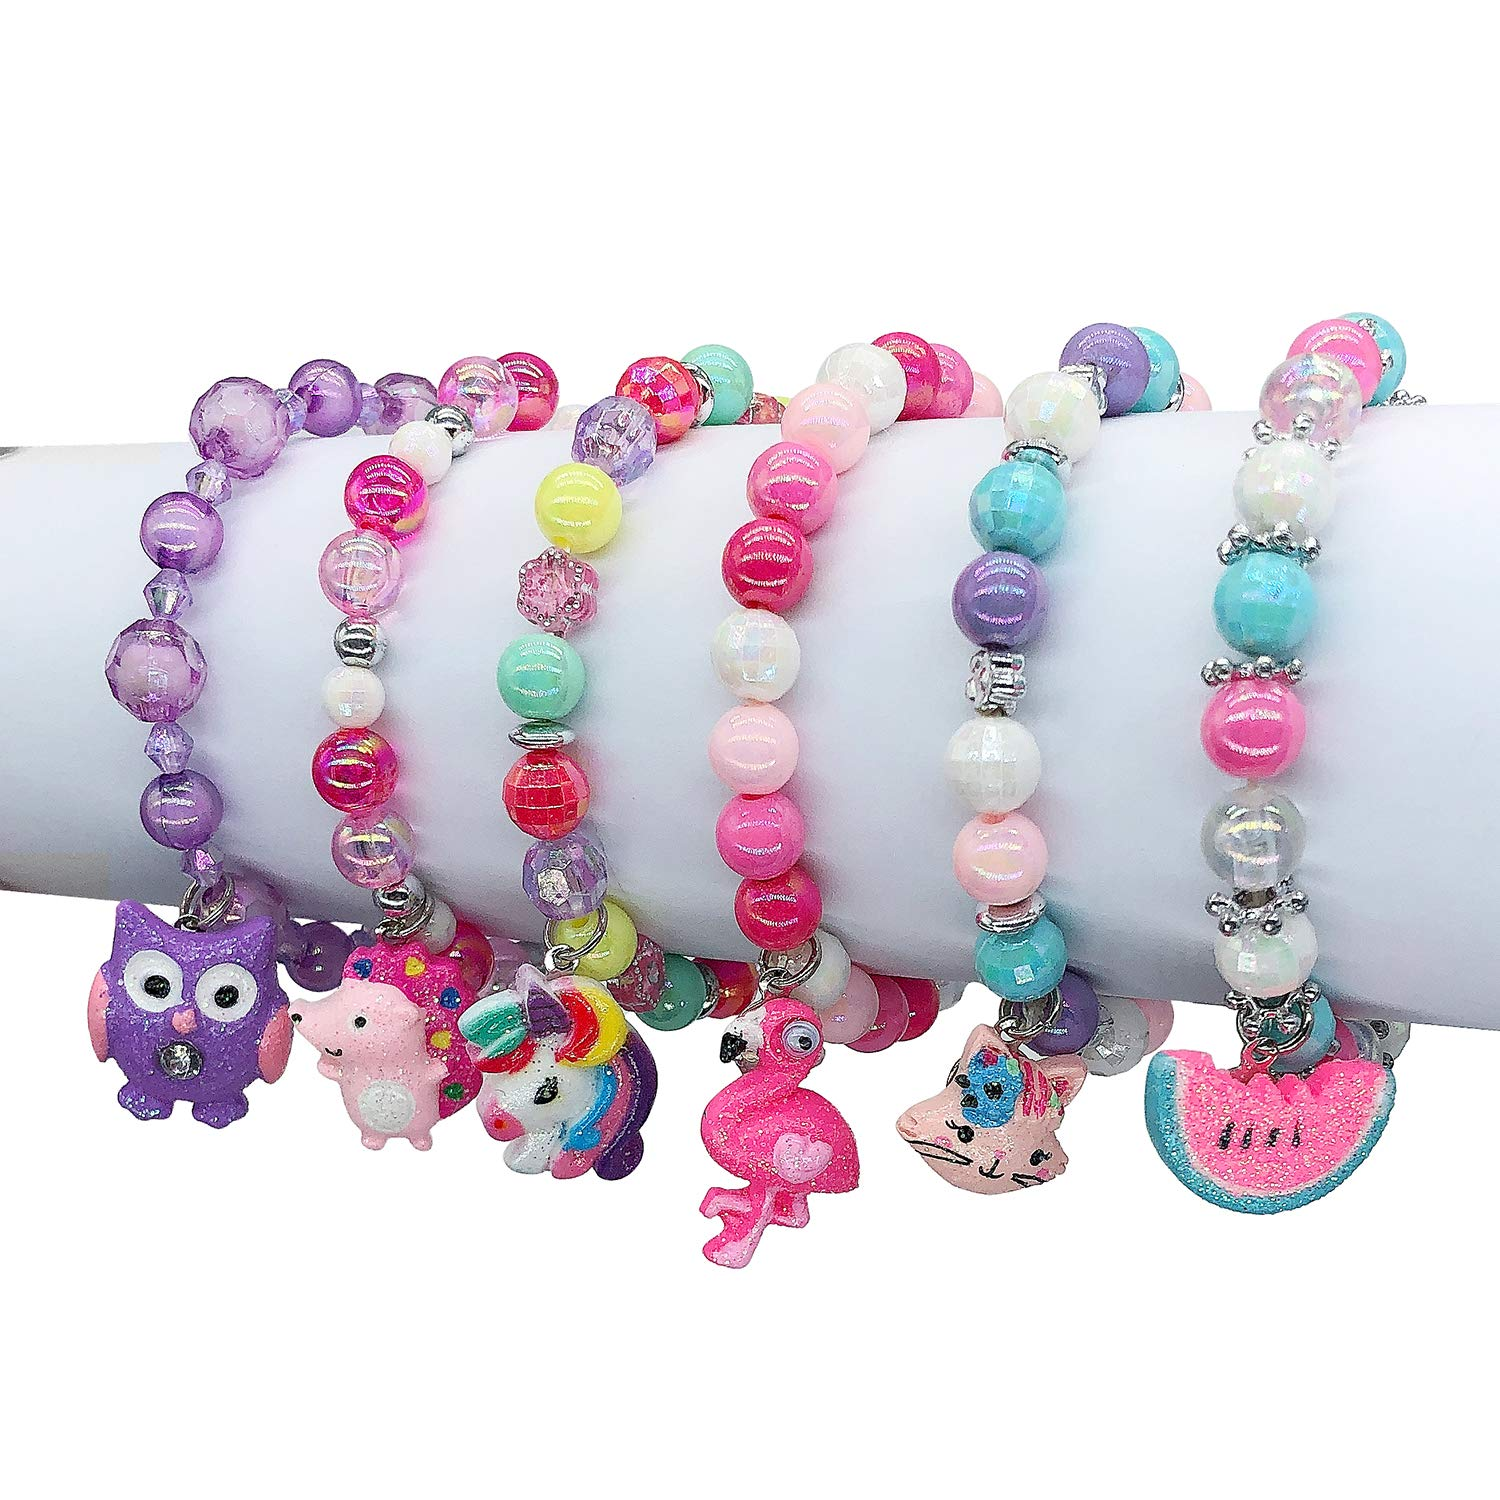 Elesa Miracle 6pc Little Girl Teens Kids Shiny Unicorn Flamingo Owl Mermaid Pendant Beaded Bracelet Value Set Kids Girl Party Favor Pretend Play Bracelet, Set A